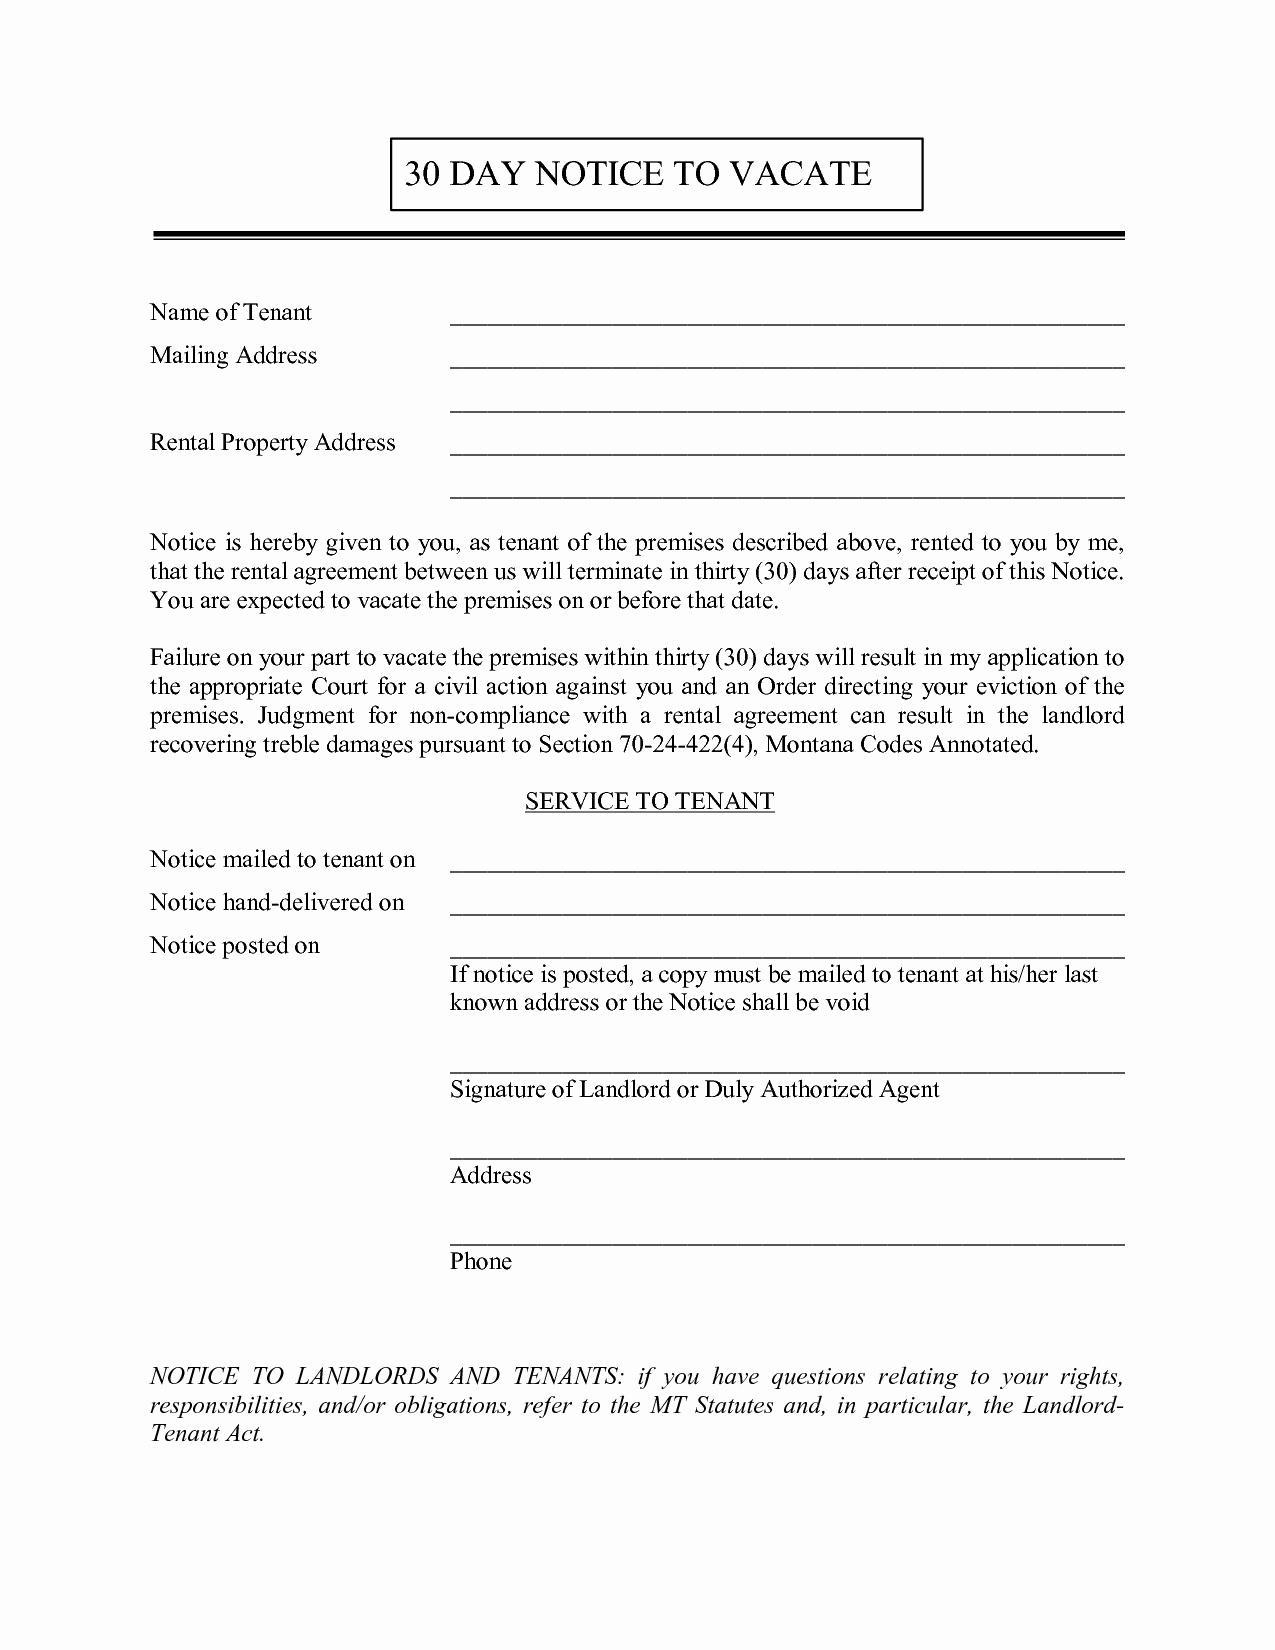 Notice to Vacate Letter Template New 30 Day Notice to Vacate to Tenant Free Printable Documents